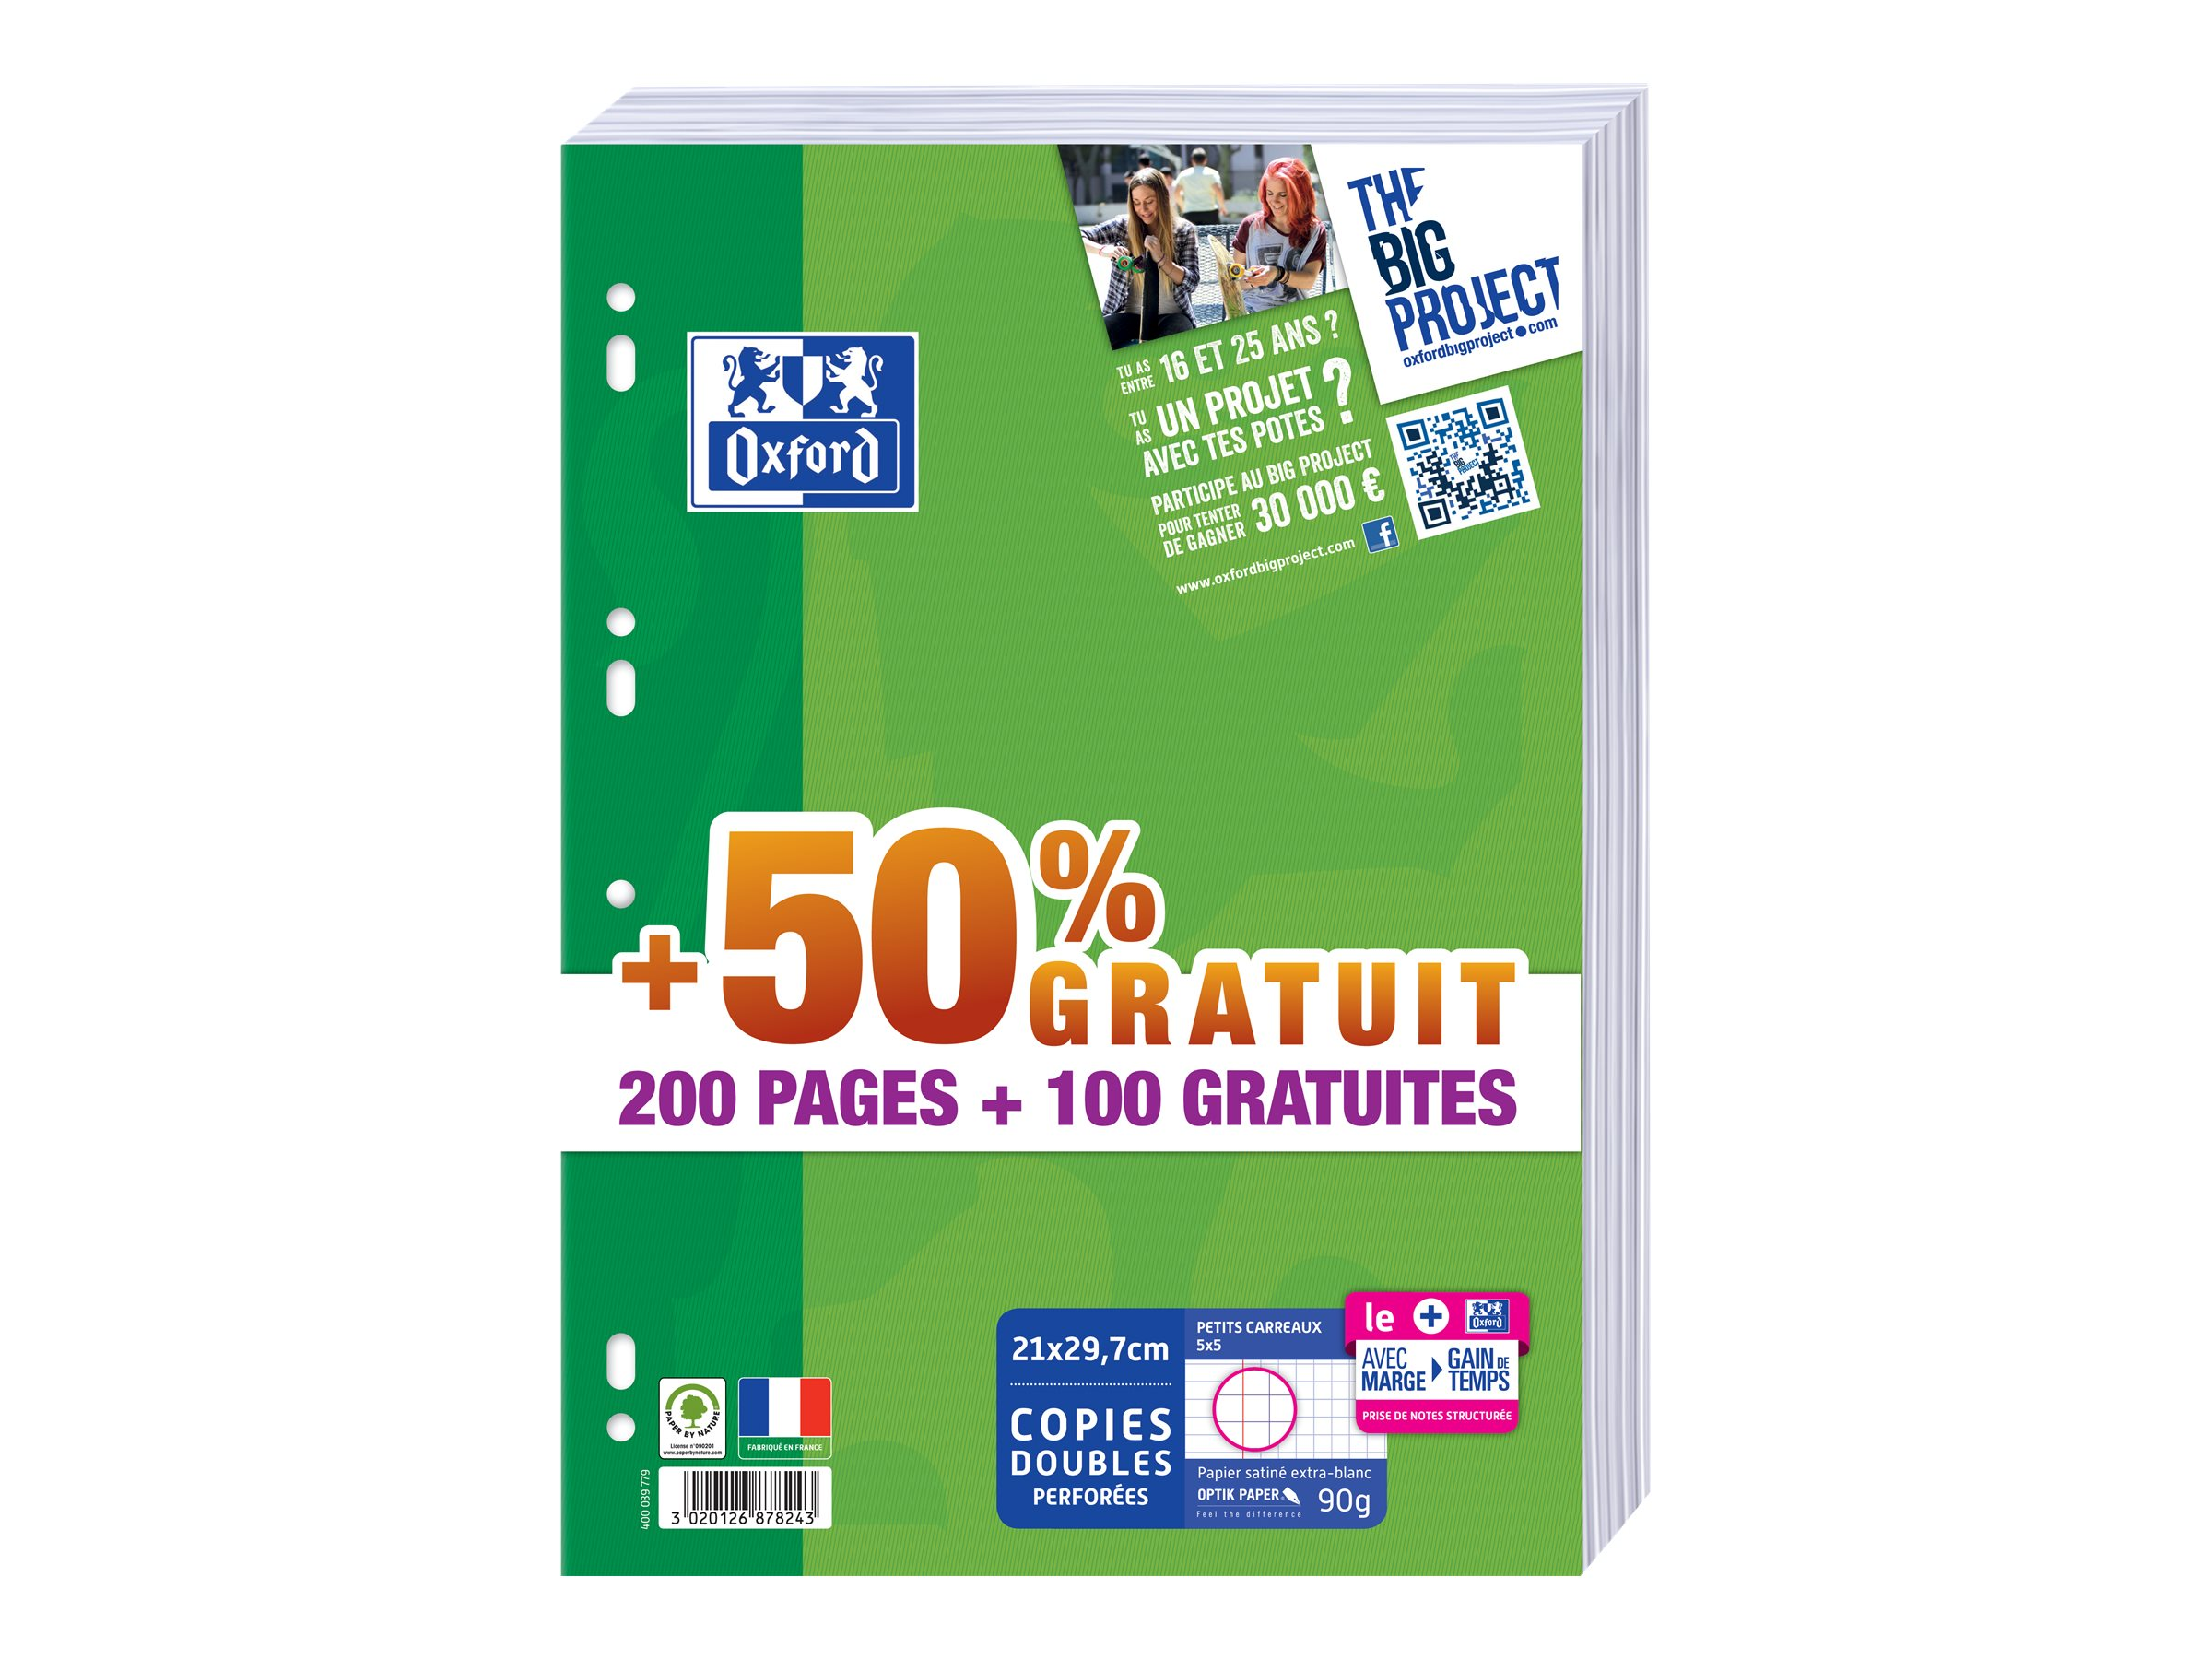 Oxford School - A4 - Copies doubles - 21 x 29,7 - 300 pages - Petits carreaux